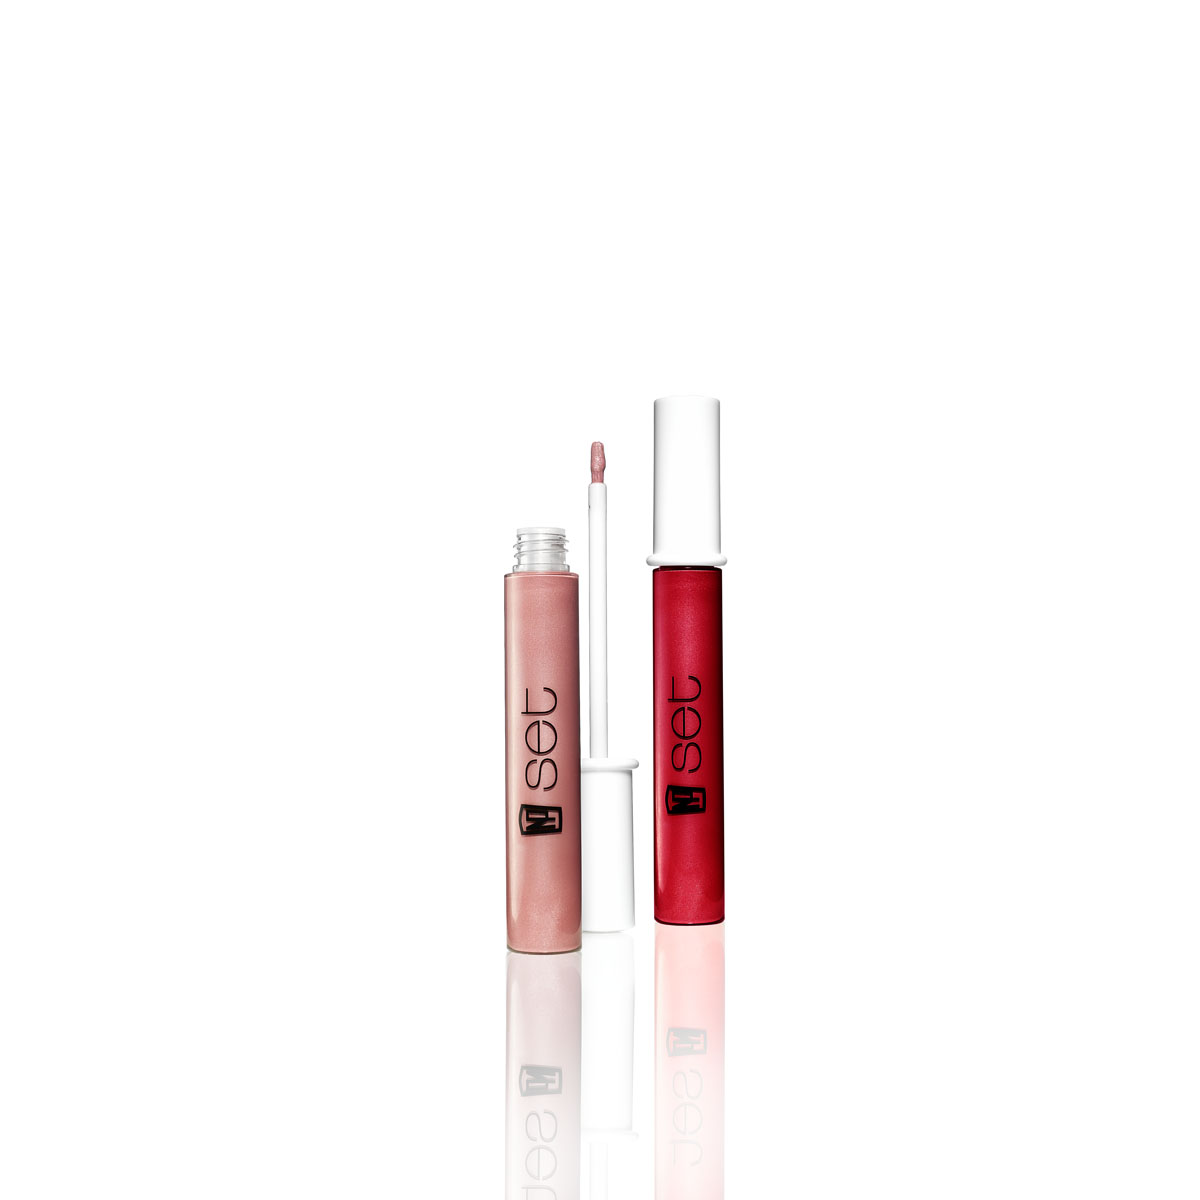 NP Set Lip Gloss ($15) — lots of shine.